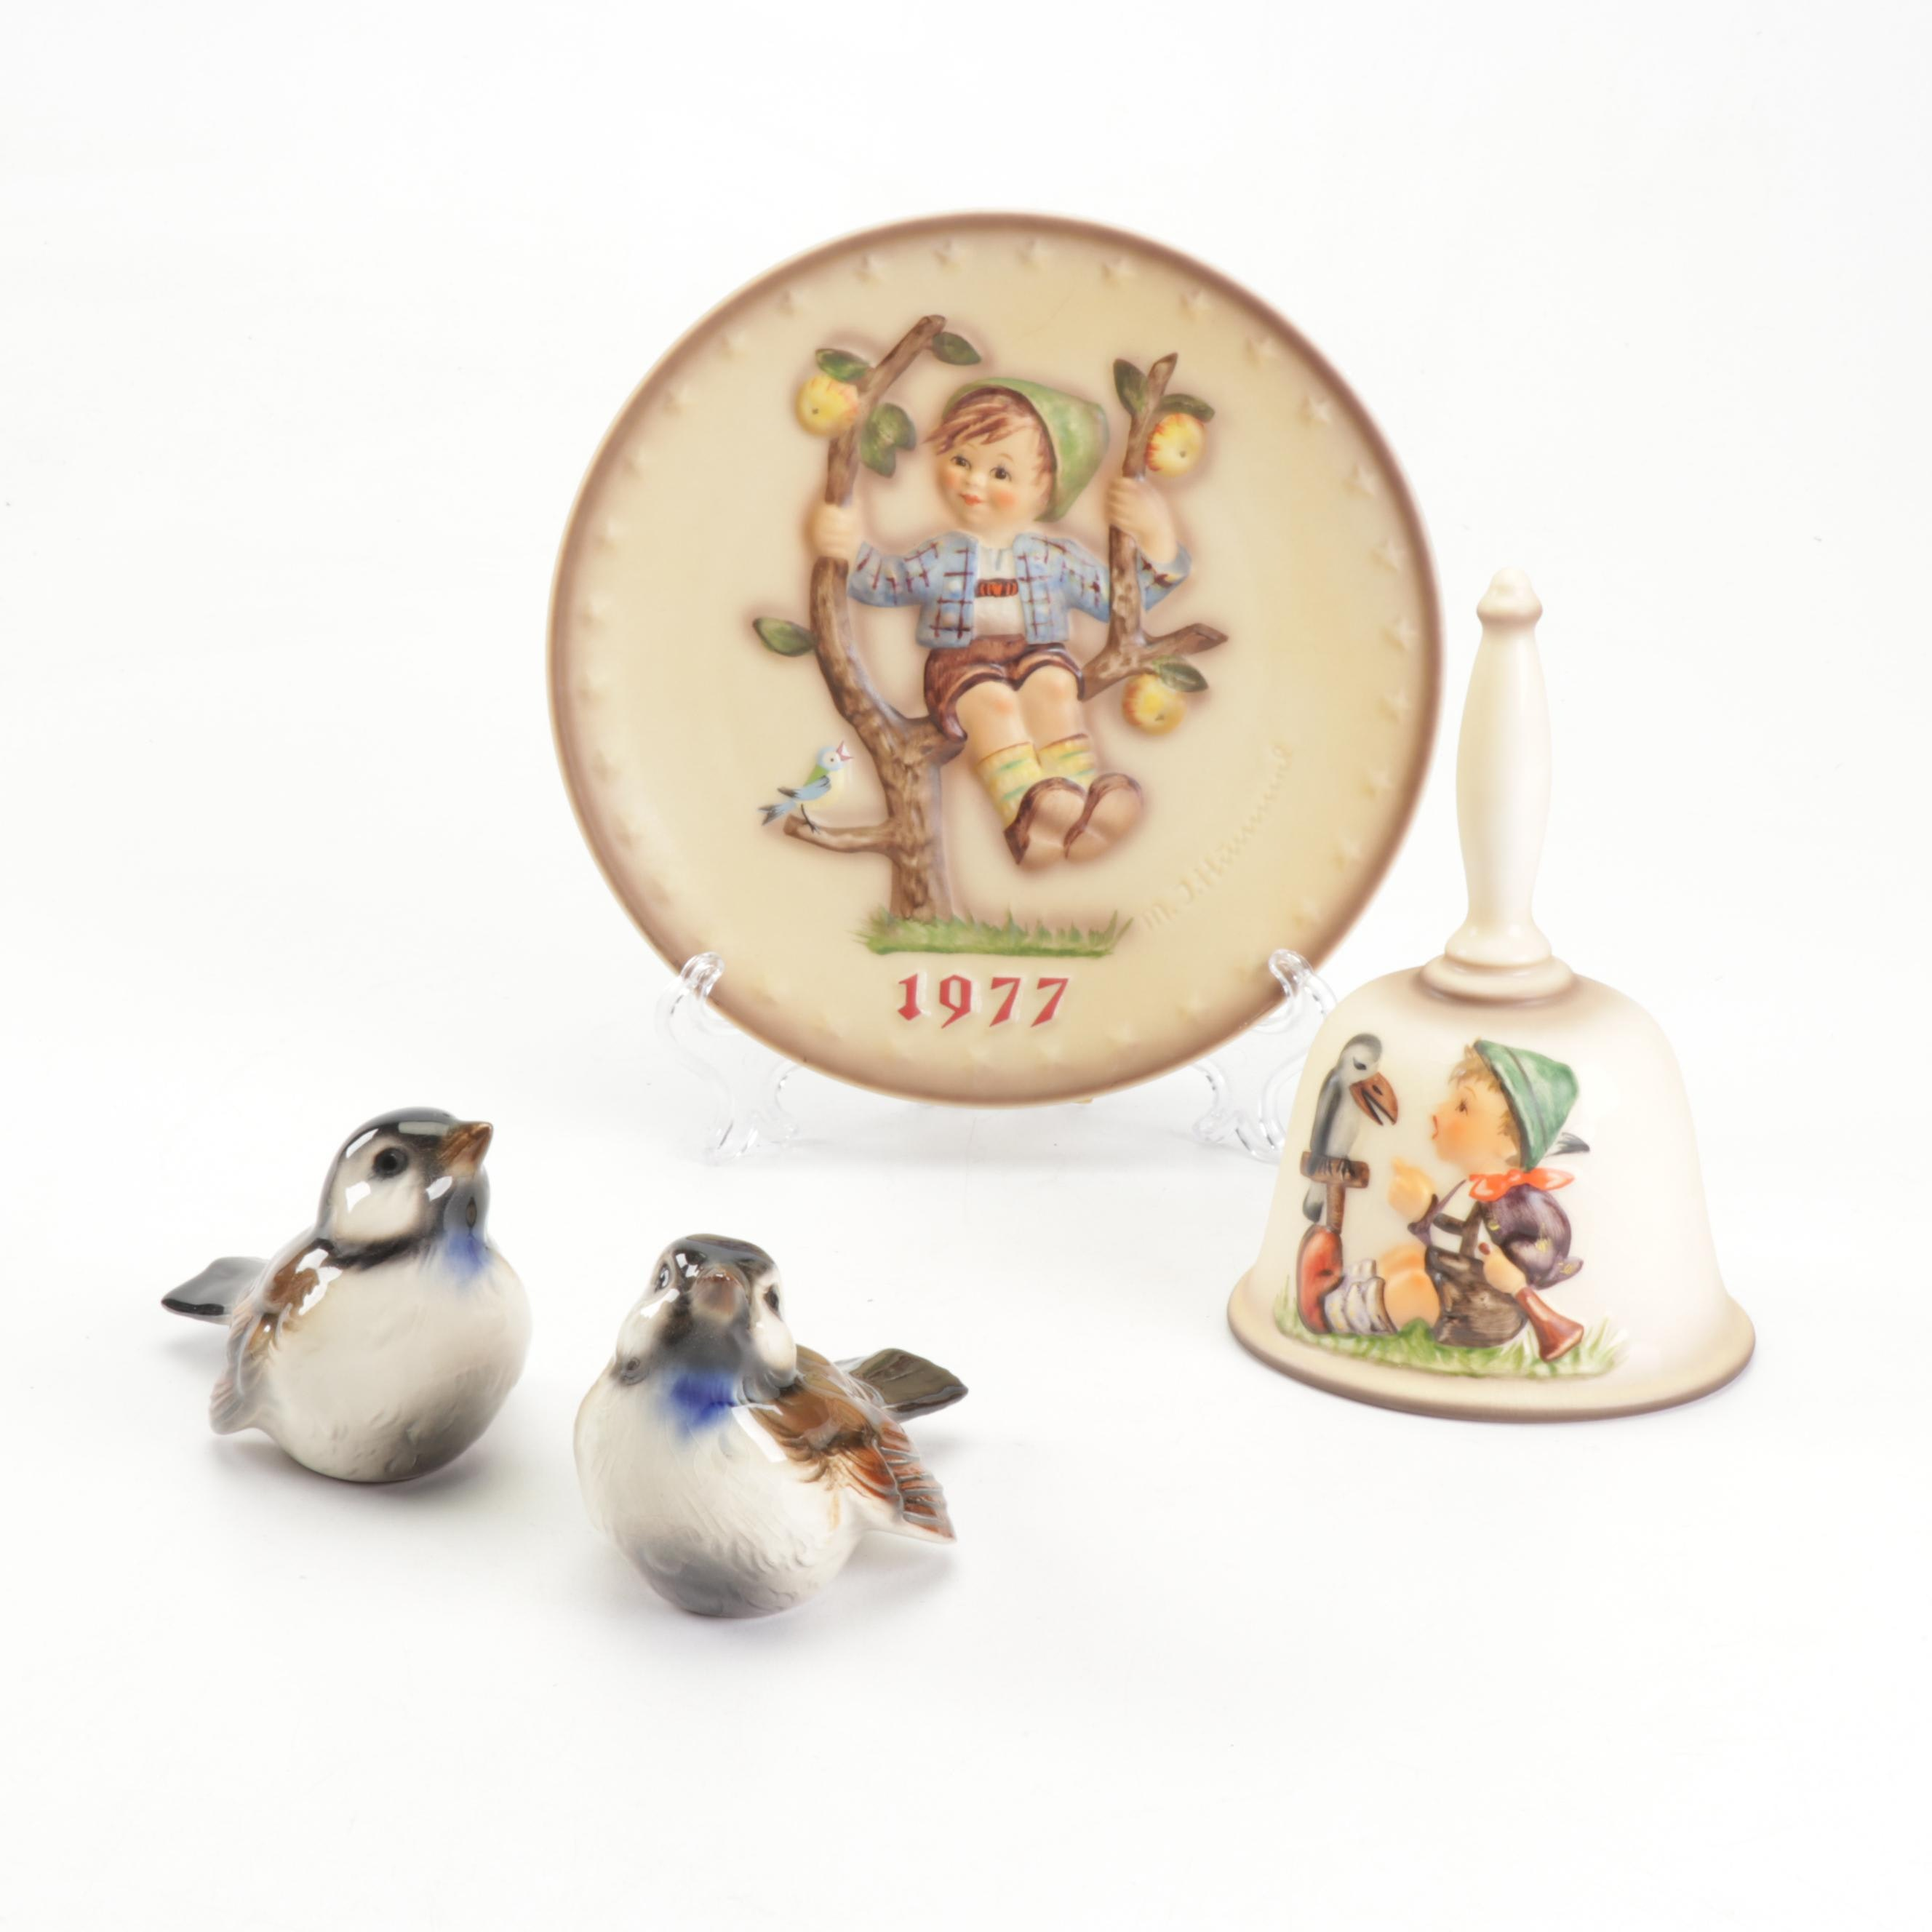 Hummel Goebel Porcelain Figurines and Decor